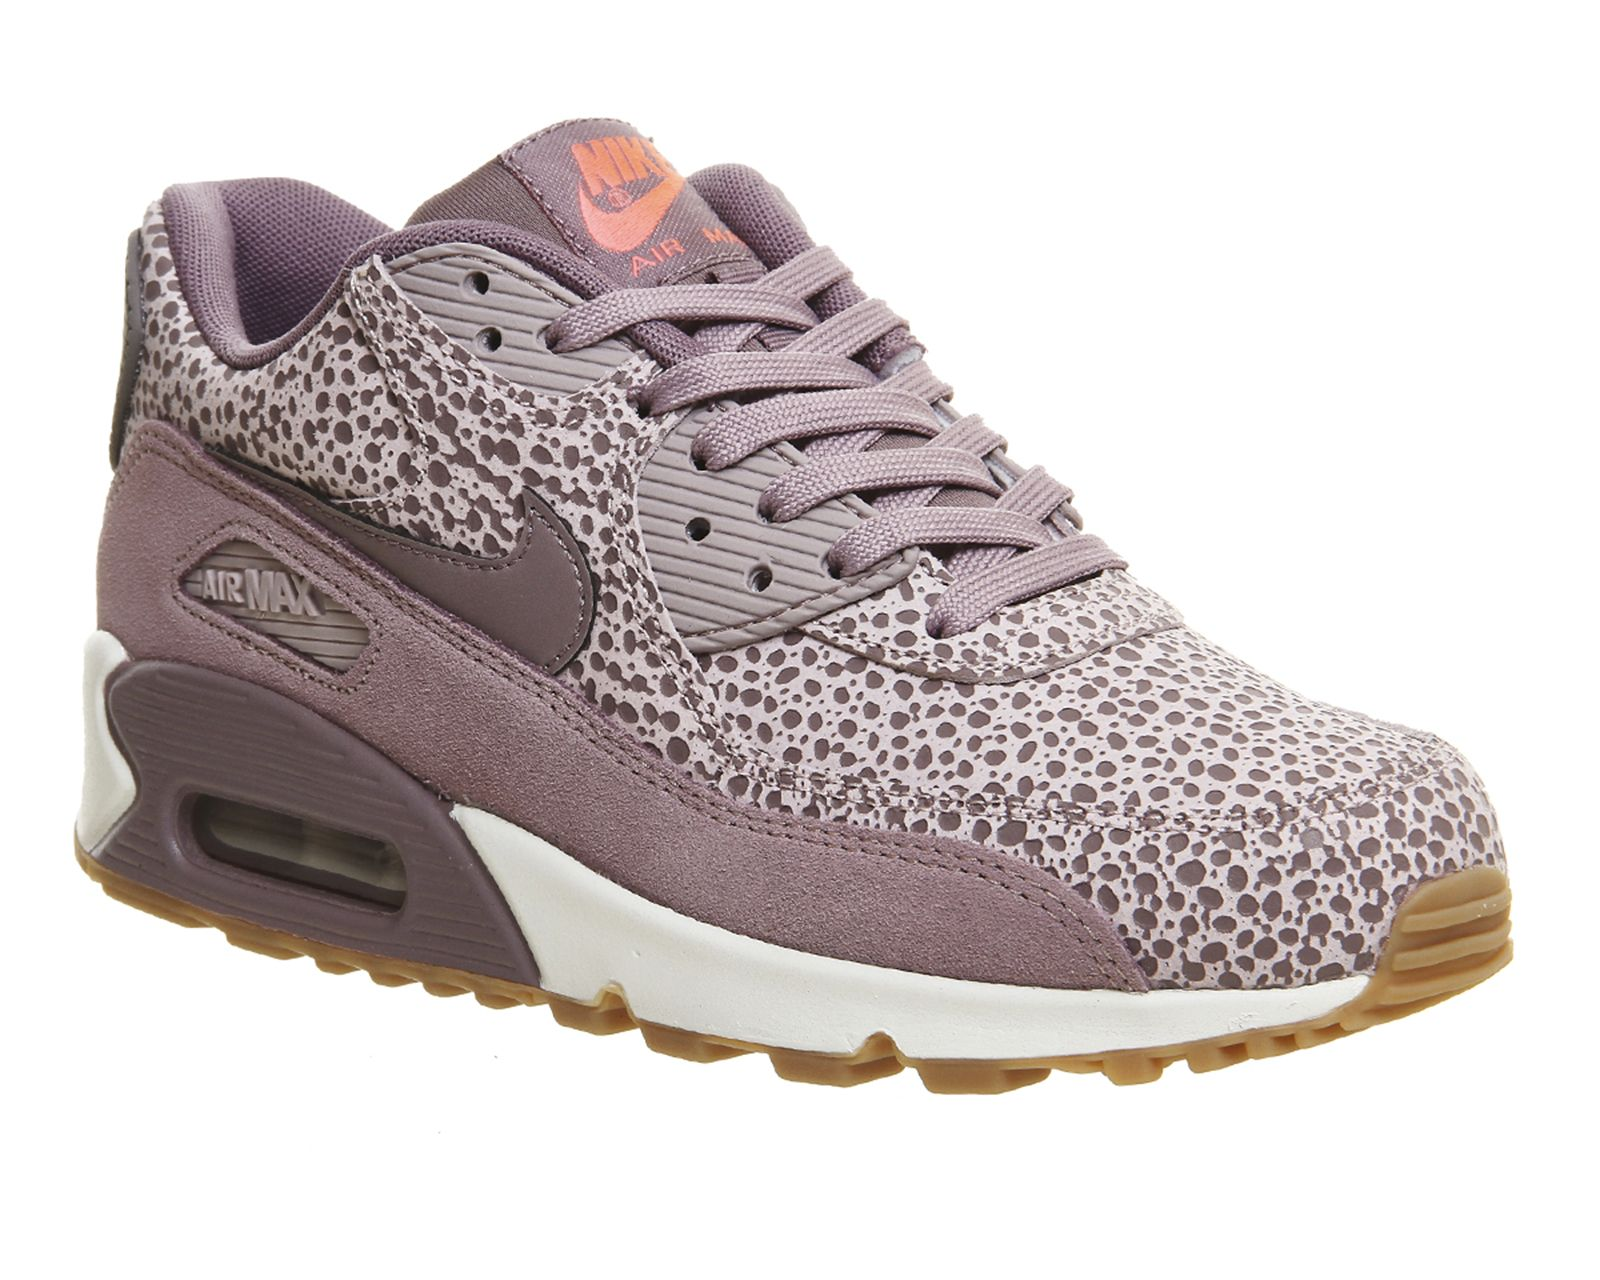 Plum Fog Purple Smoke Bleached Lilac Prm Nike Air Max 90 From Office Co